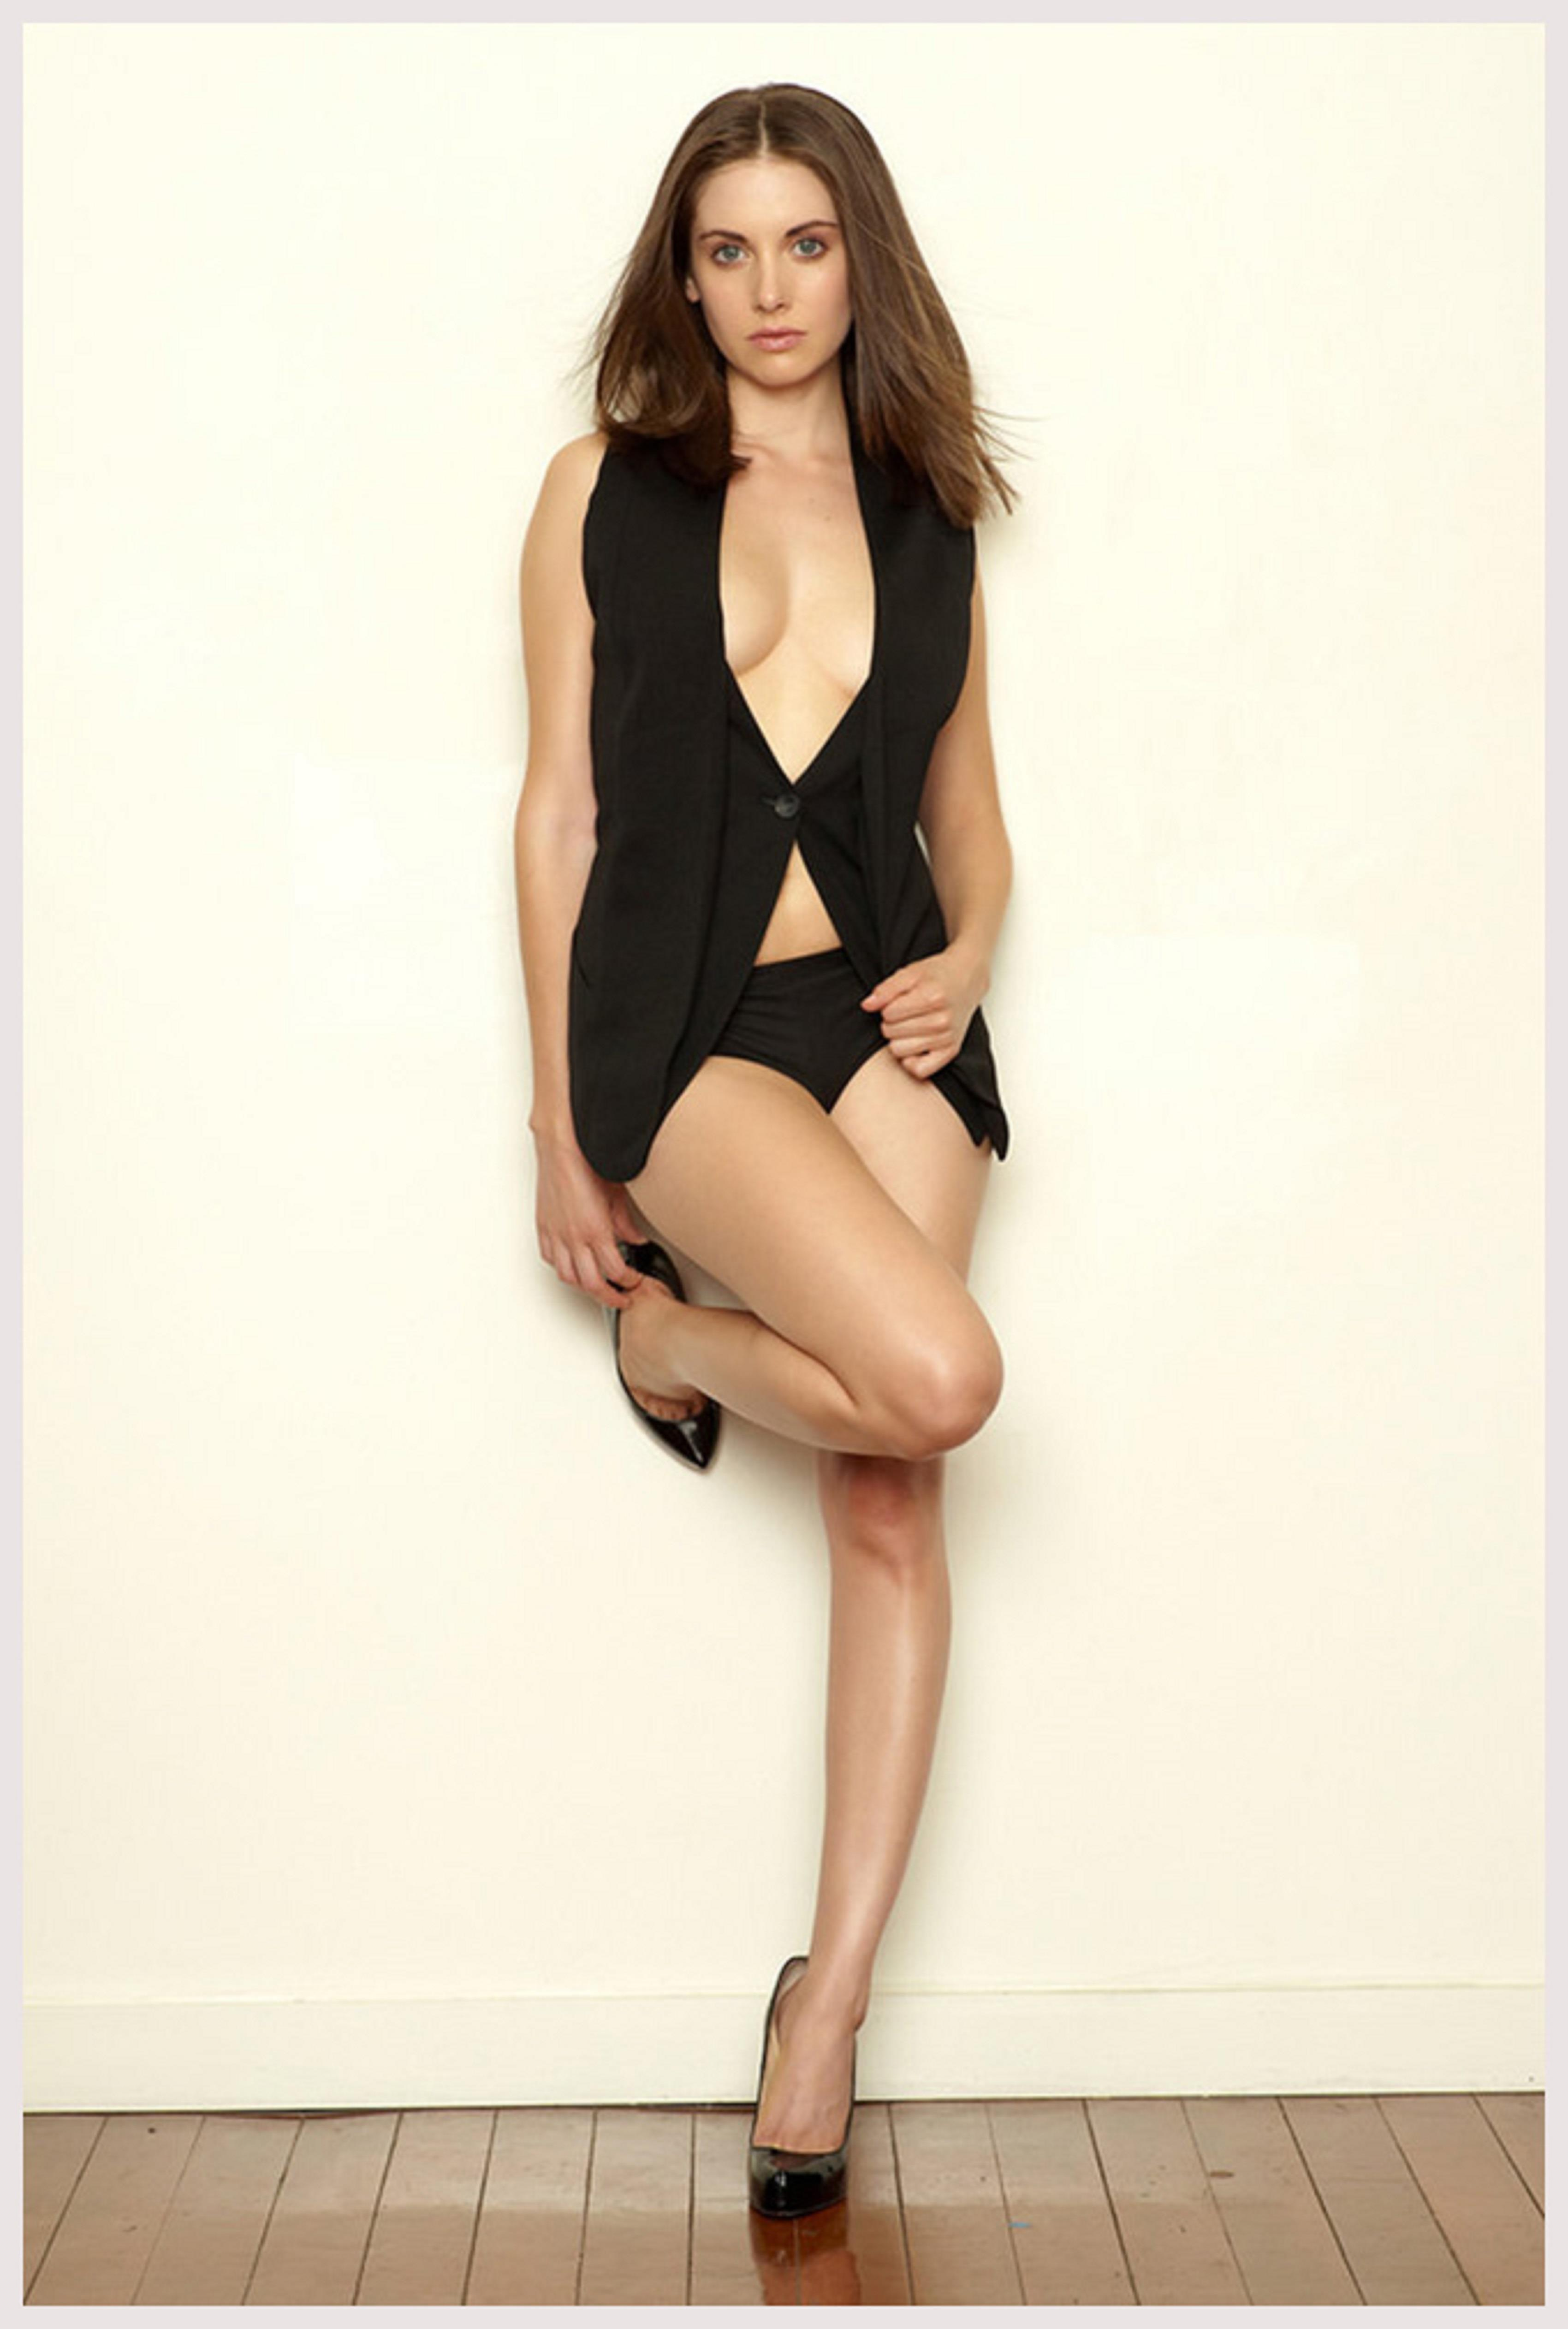 alison brie hot - photo #19